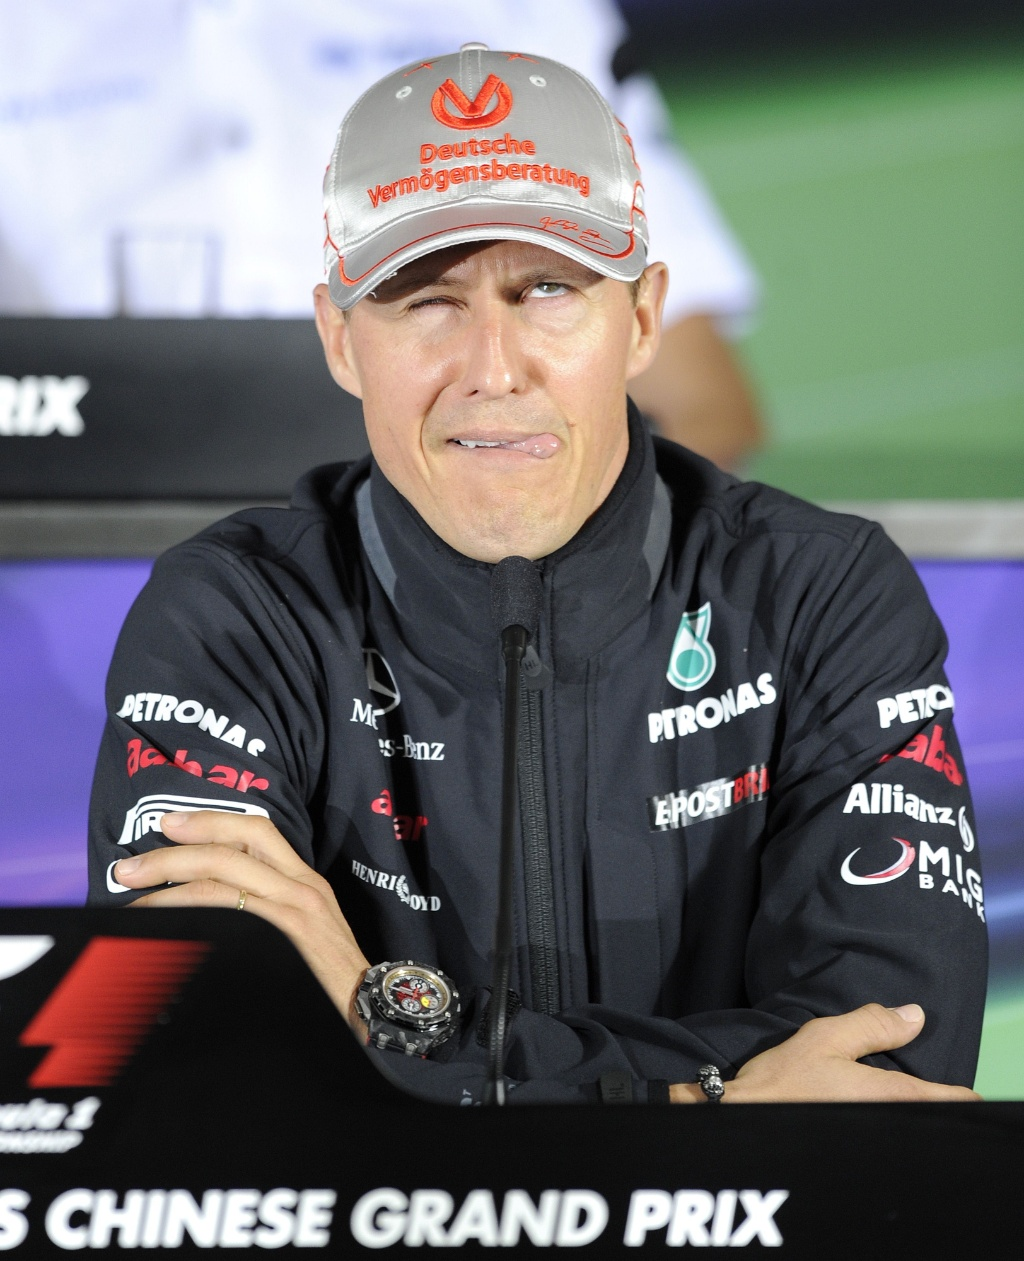 Michael Schumacher faz careta durante entrevista coletiva para GP da China